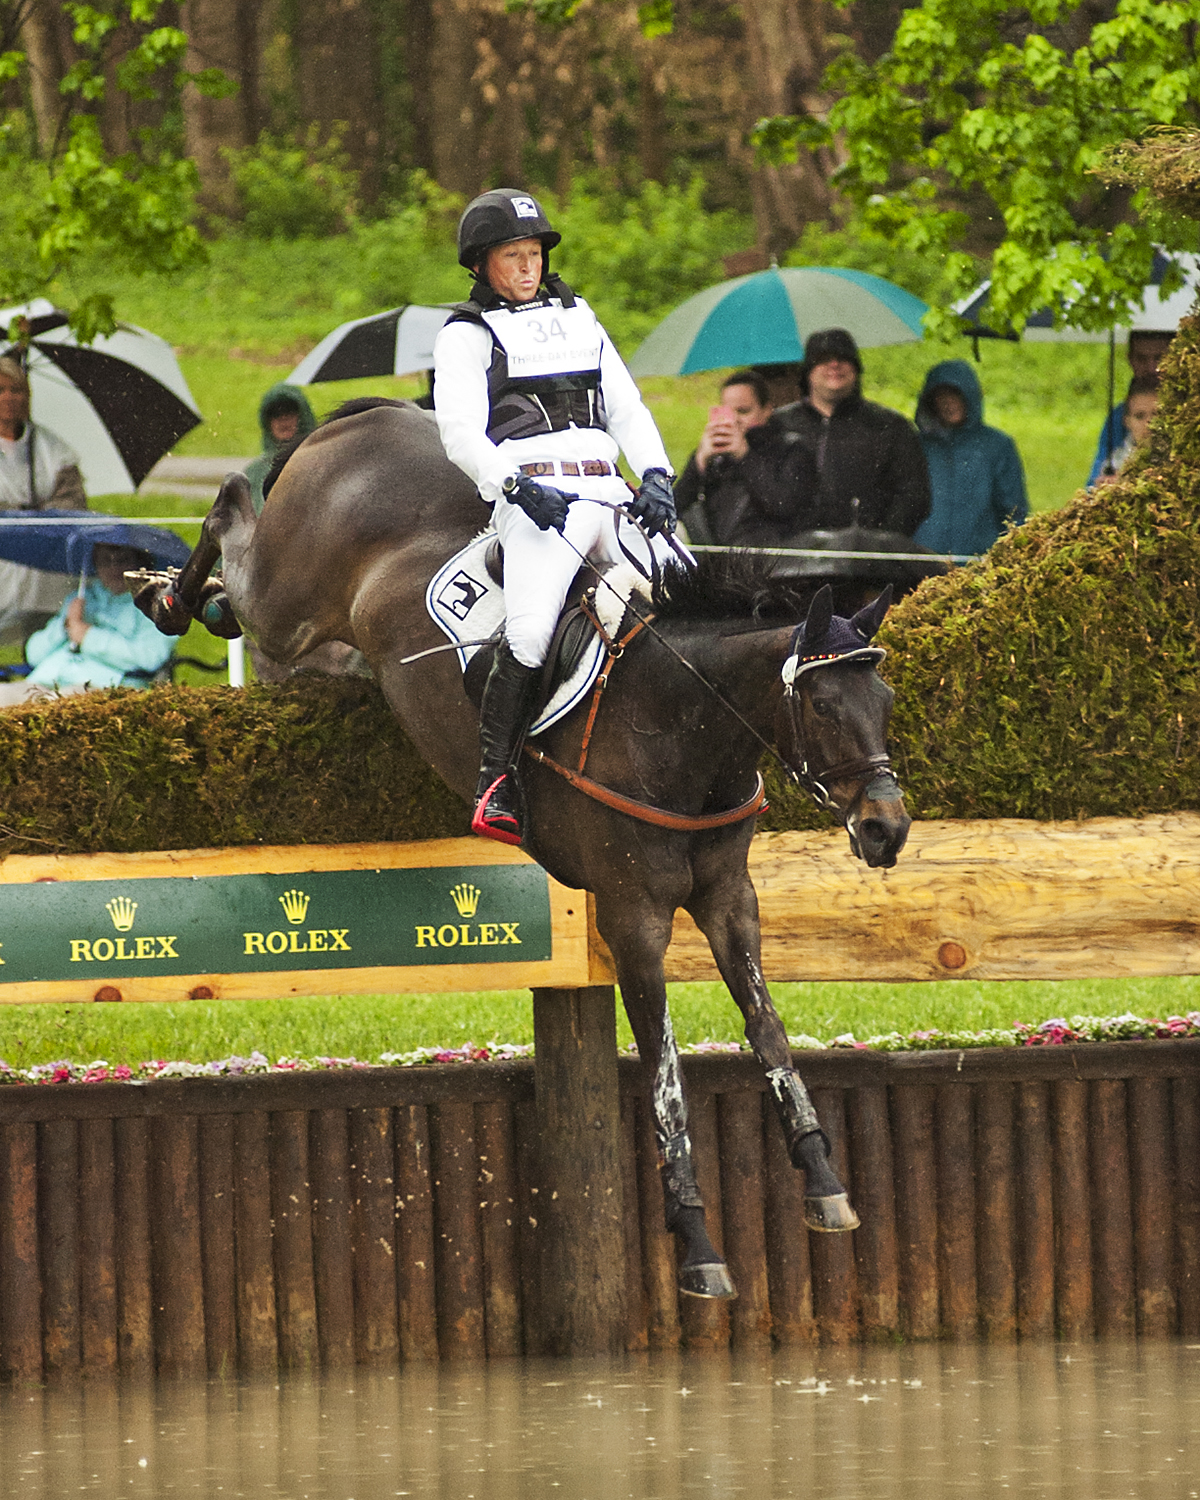 Michael Jung (GER) and Fischerrocana FST hold the lead going into the Show Jumping phase of the 2016 Rolex Kentucky Three-Day Event Presented by Land Rover (Photo by Michelle Dunn)